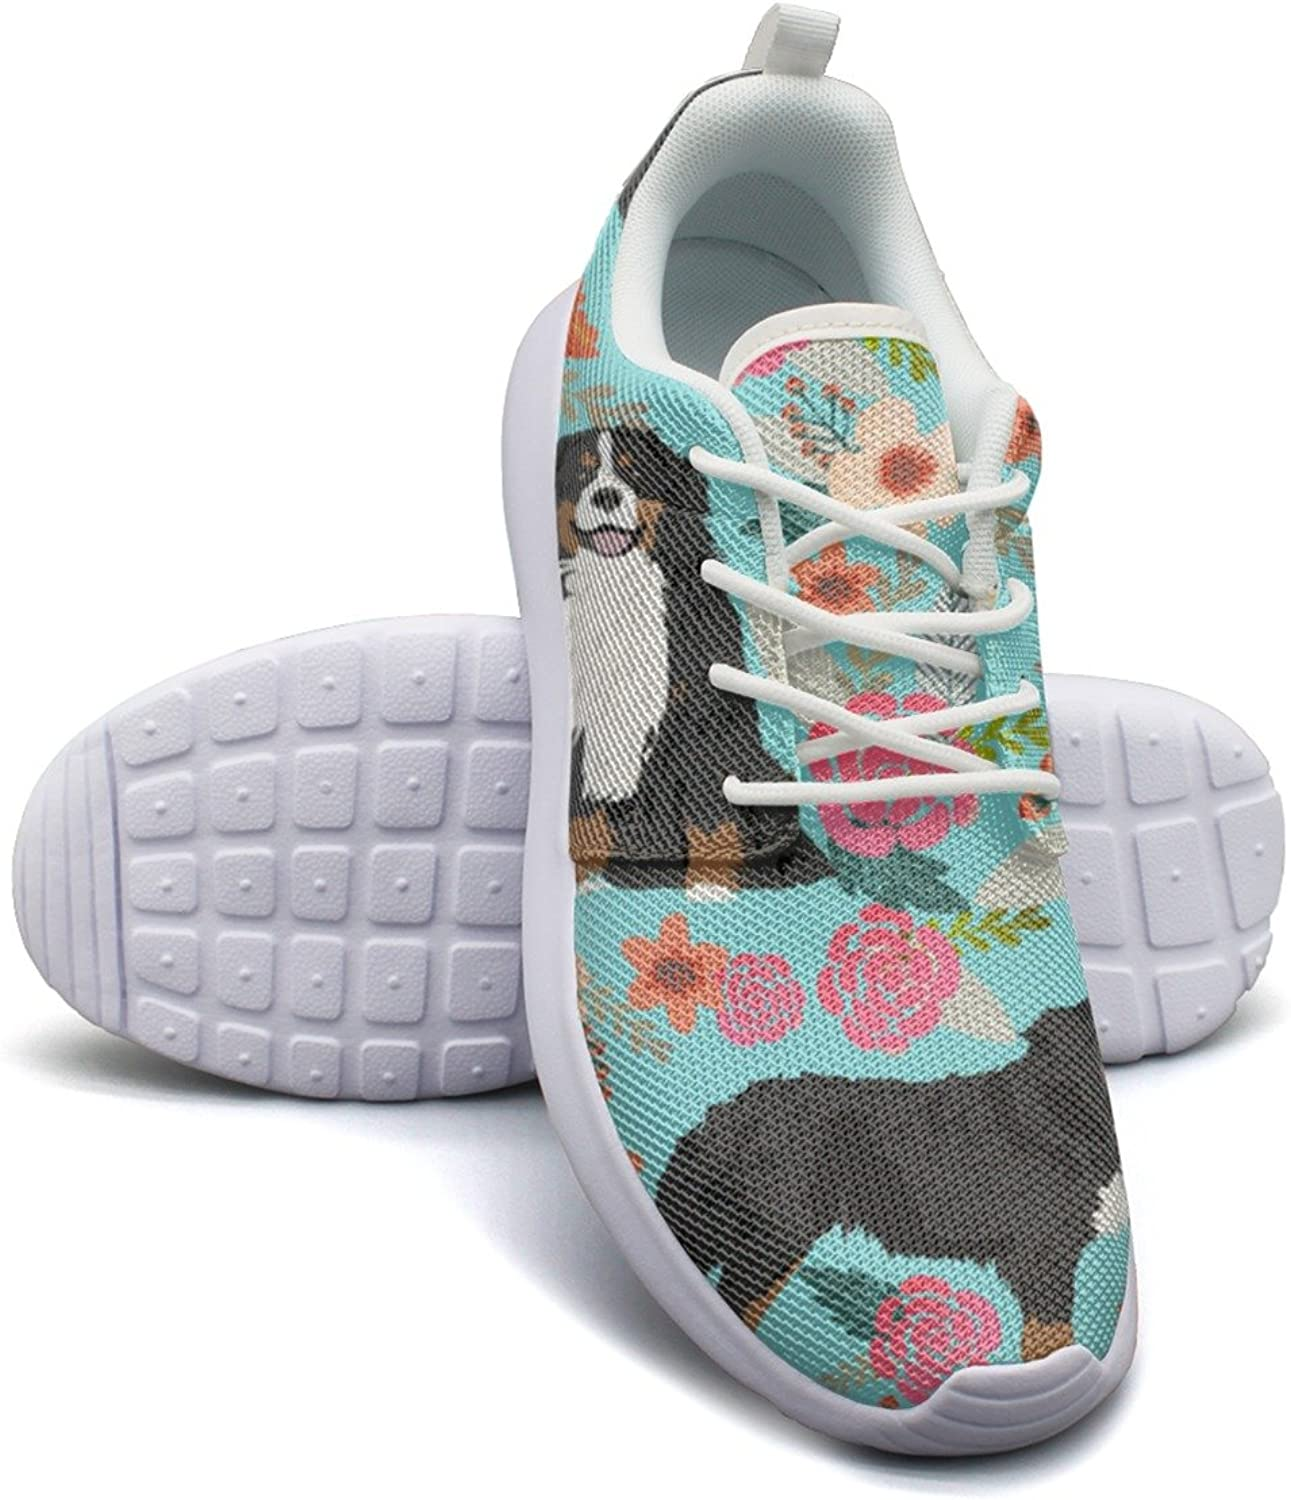 Gjsonmv Bernese Pet Dog Floral mesh Lightweight shoes for Women Fashion Sports Badminton Sneakers shoes